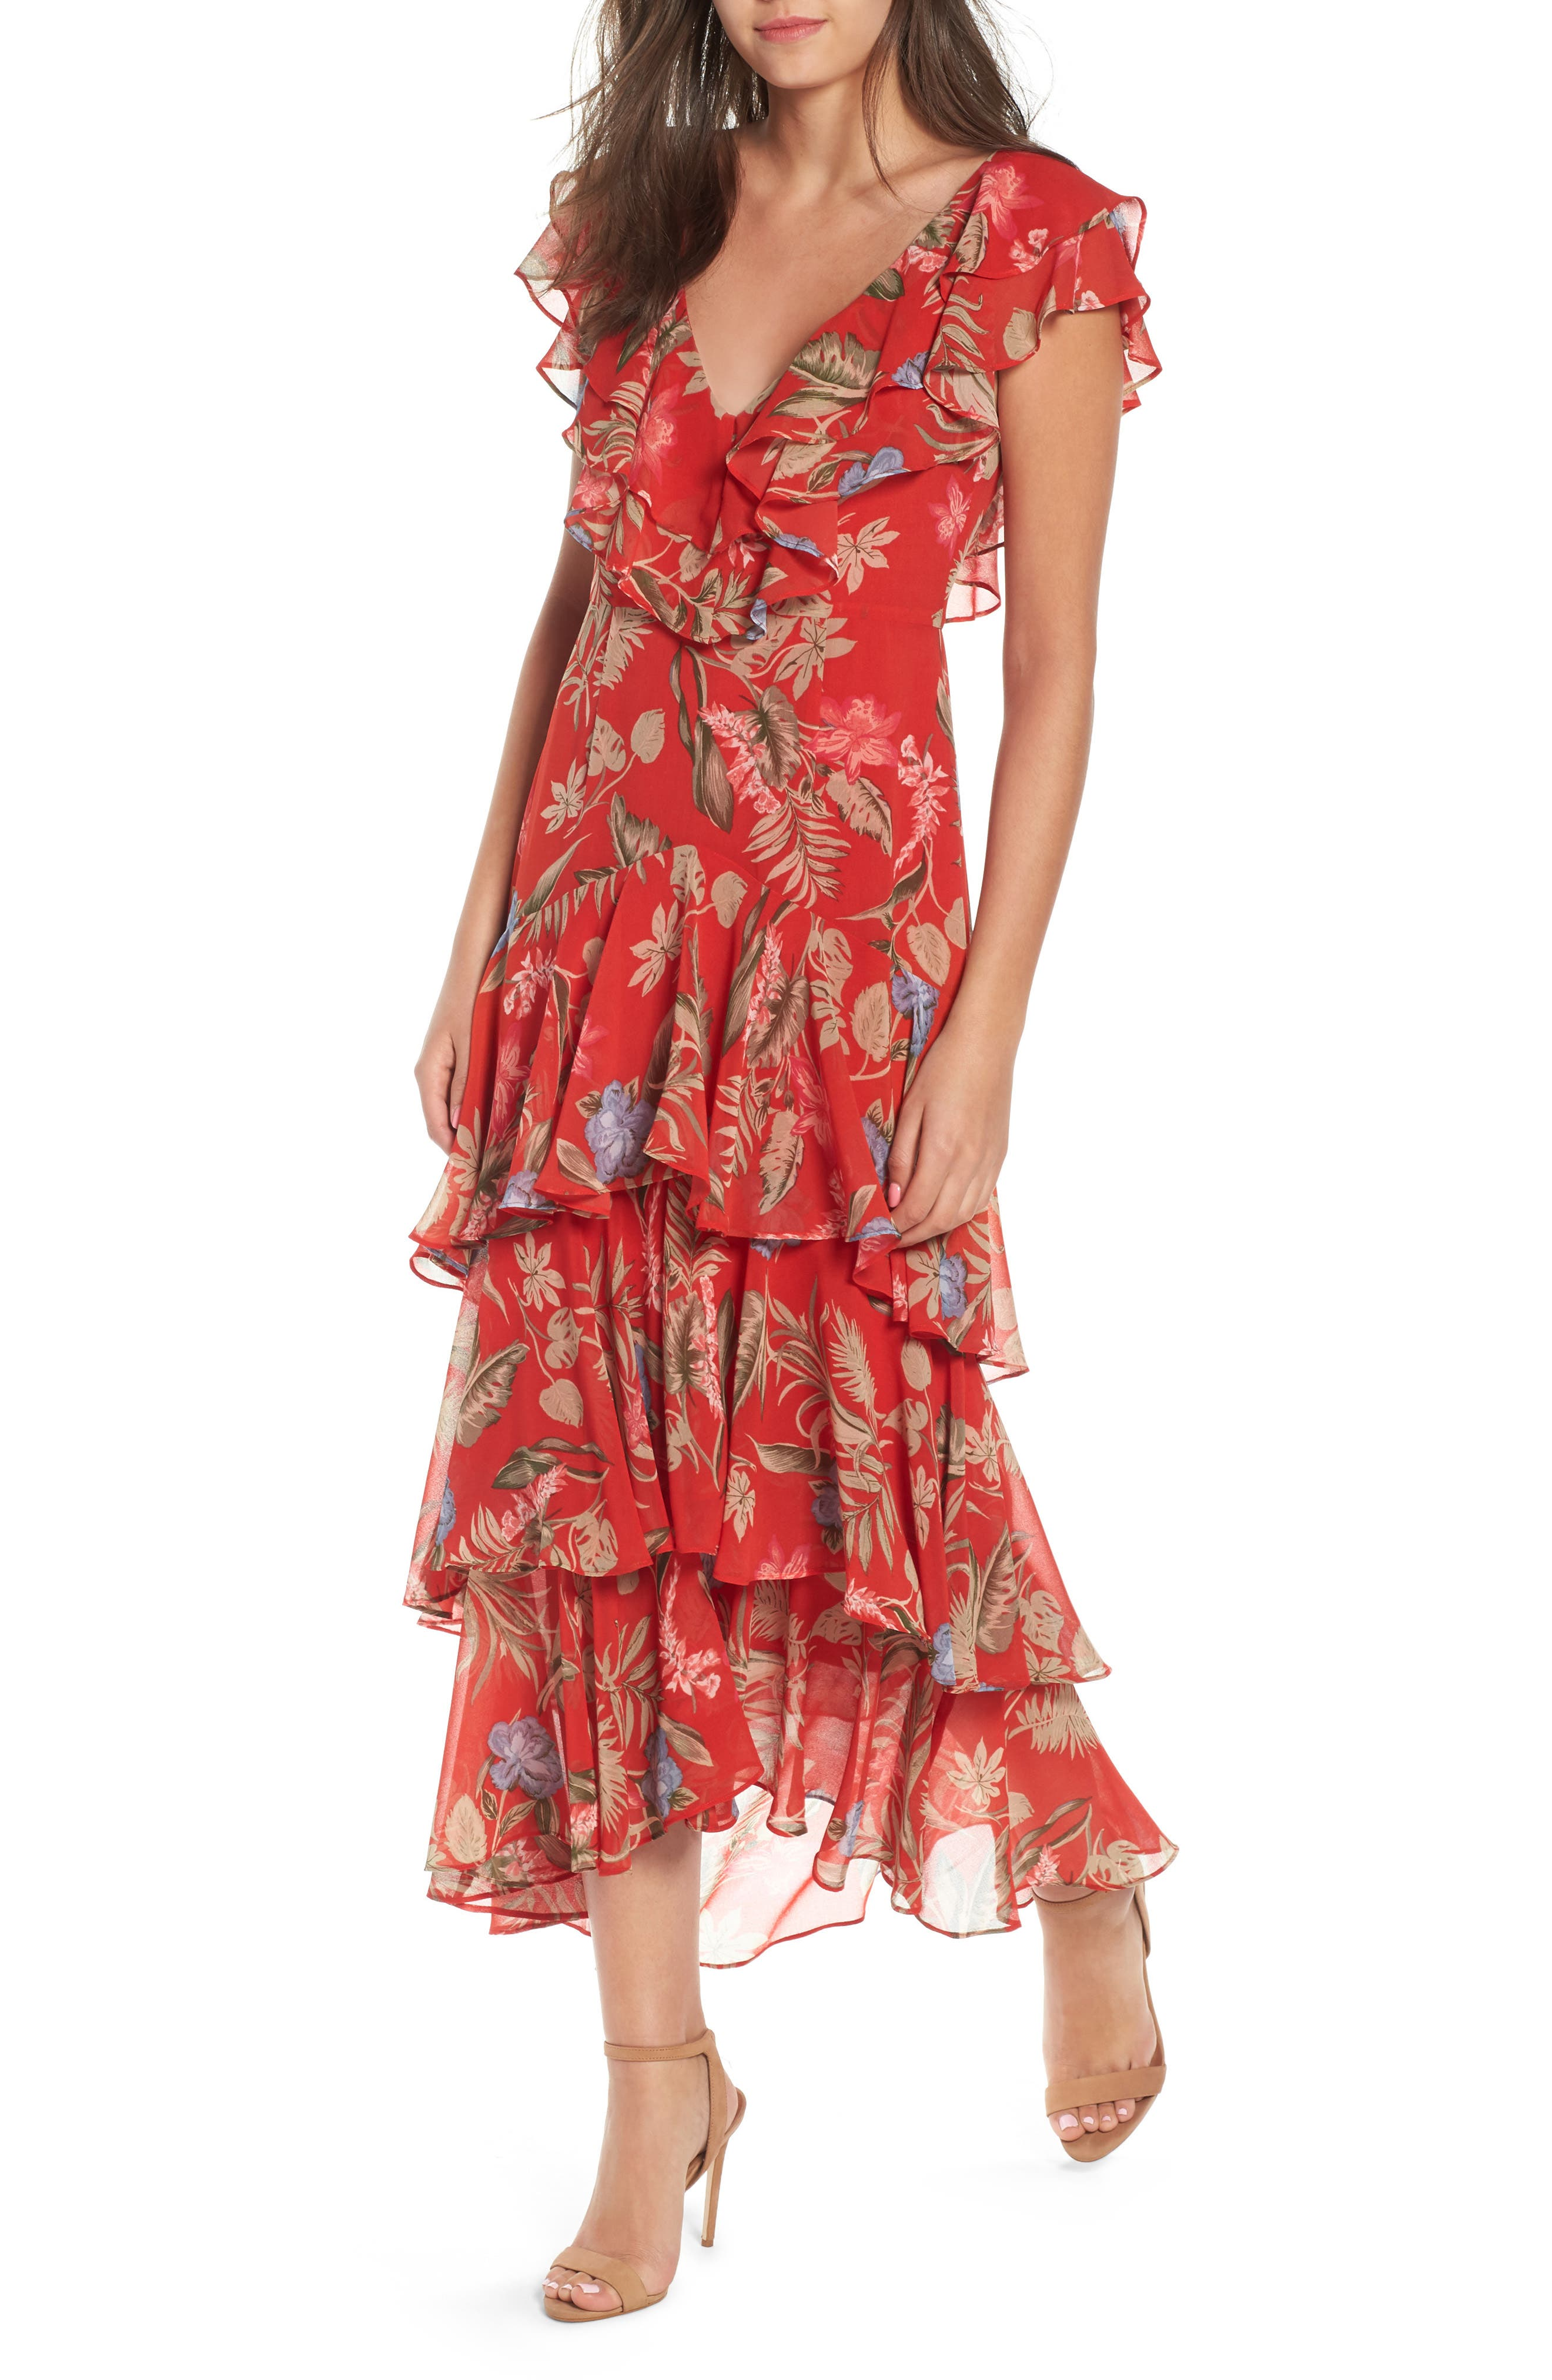 Chelsea Tiered Ruffle Maxi Dress,                         Main,                         color, Red Tropical